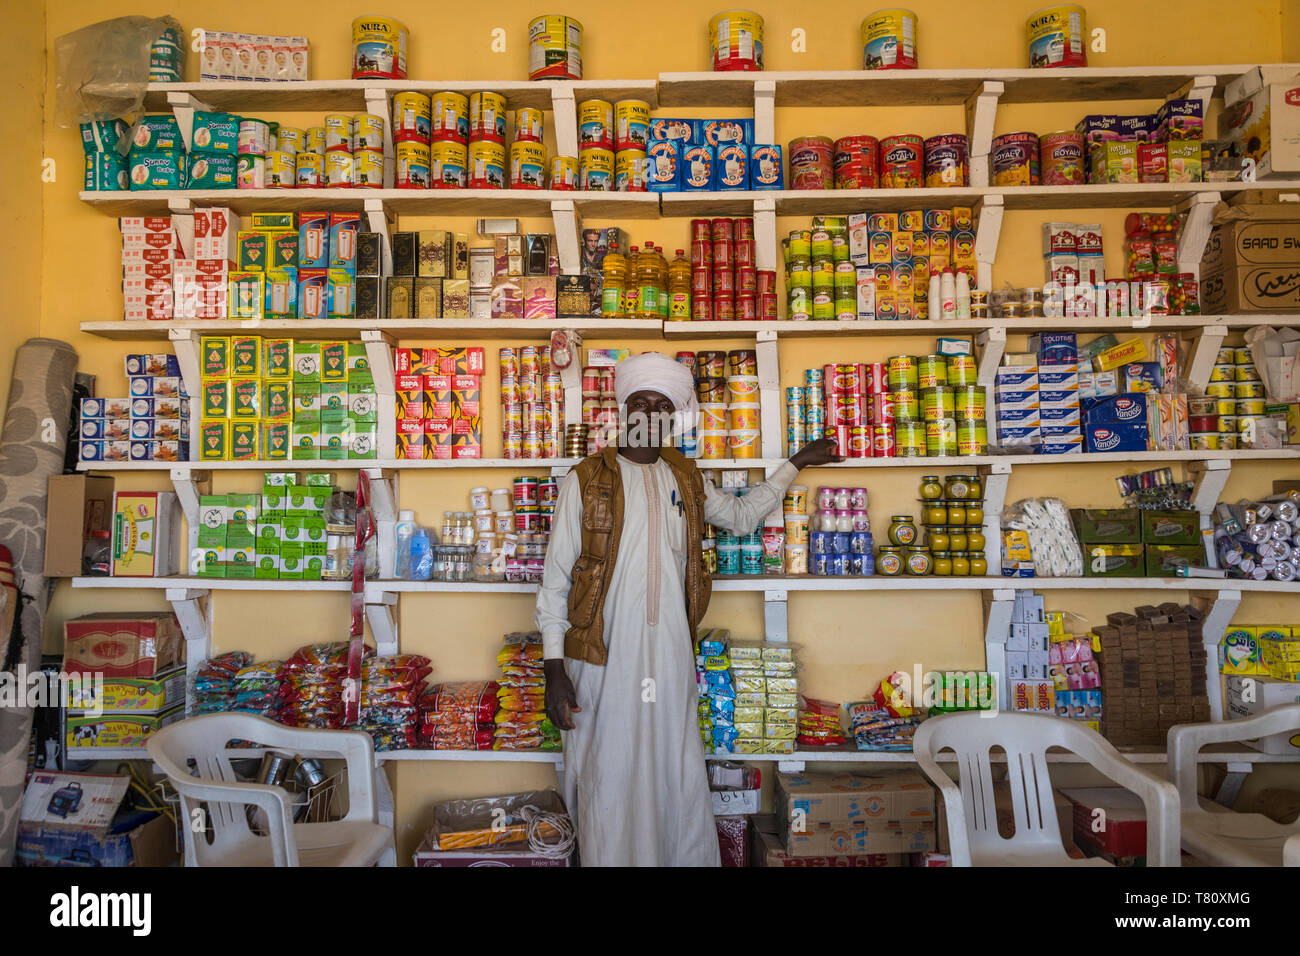 Toubou man in a store, Sahel, Chad, Africa - Stock Image